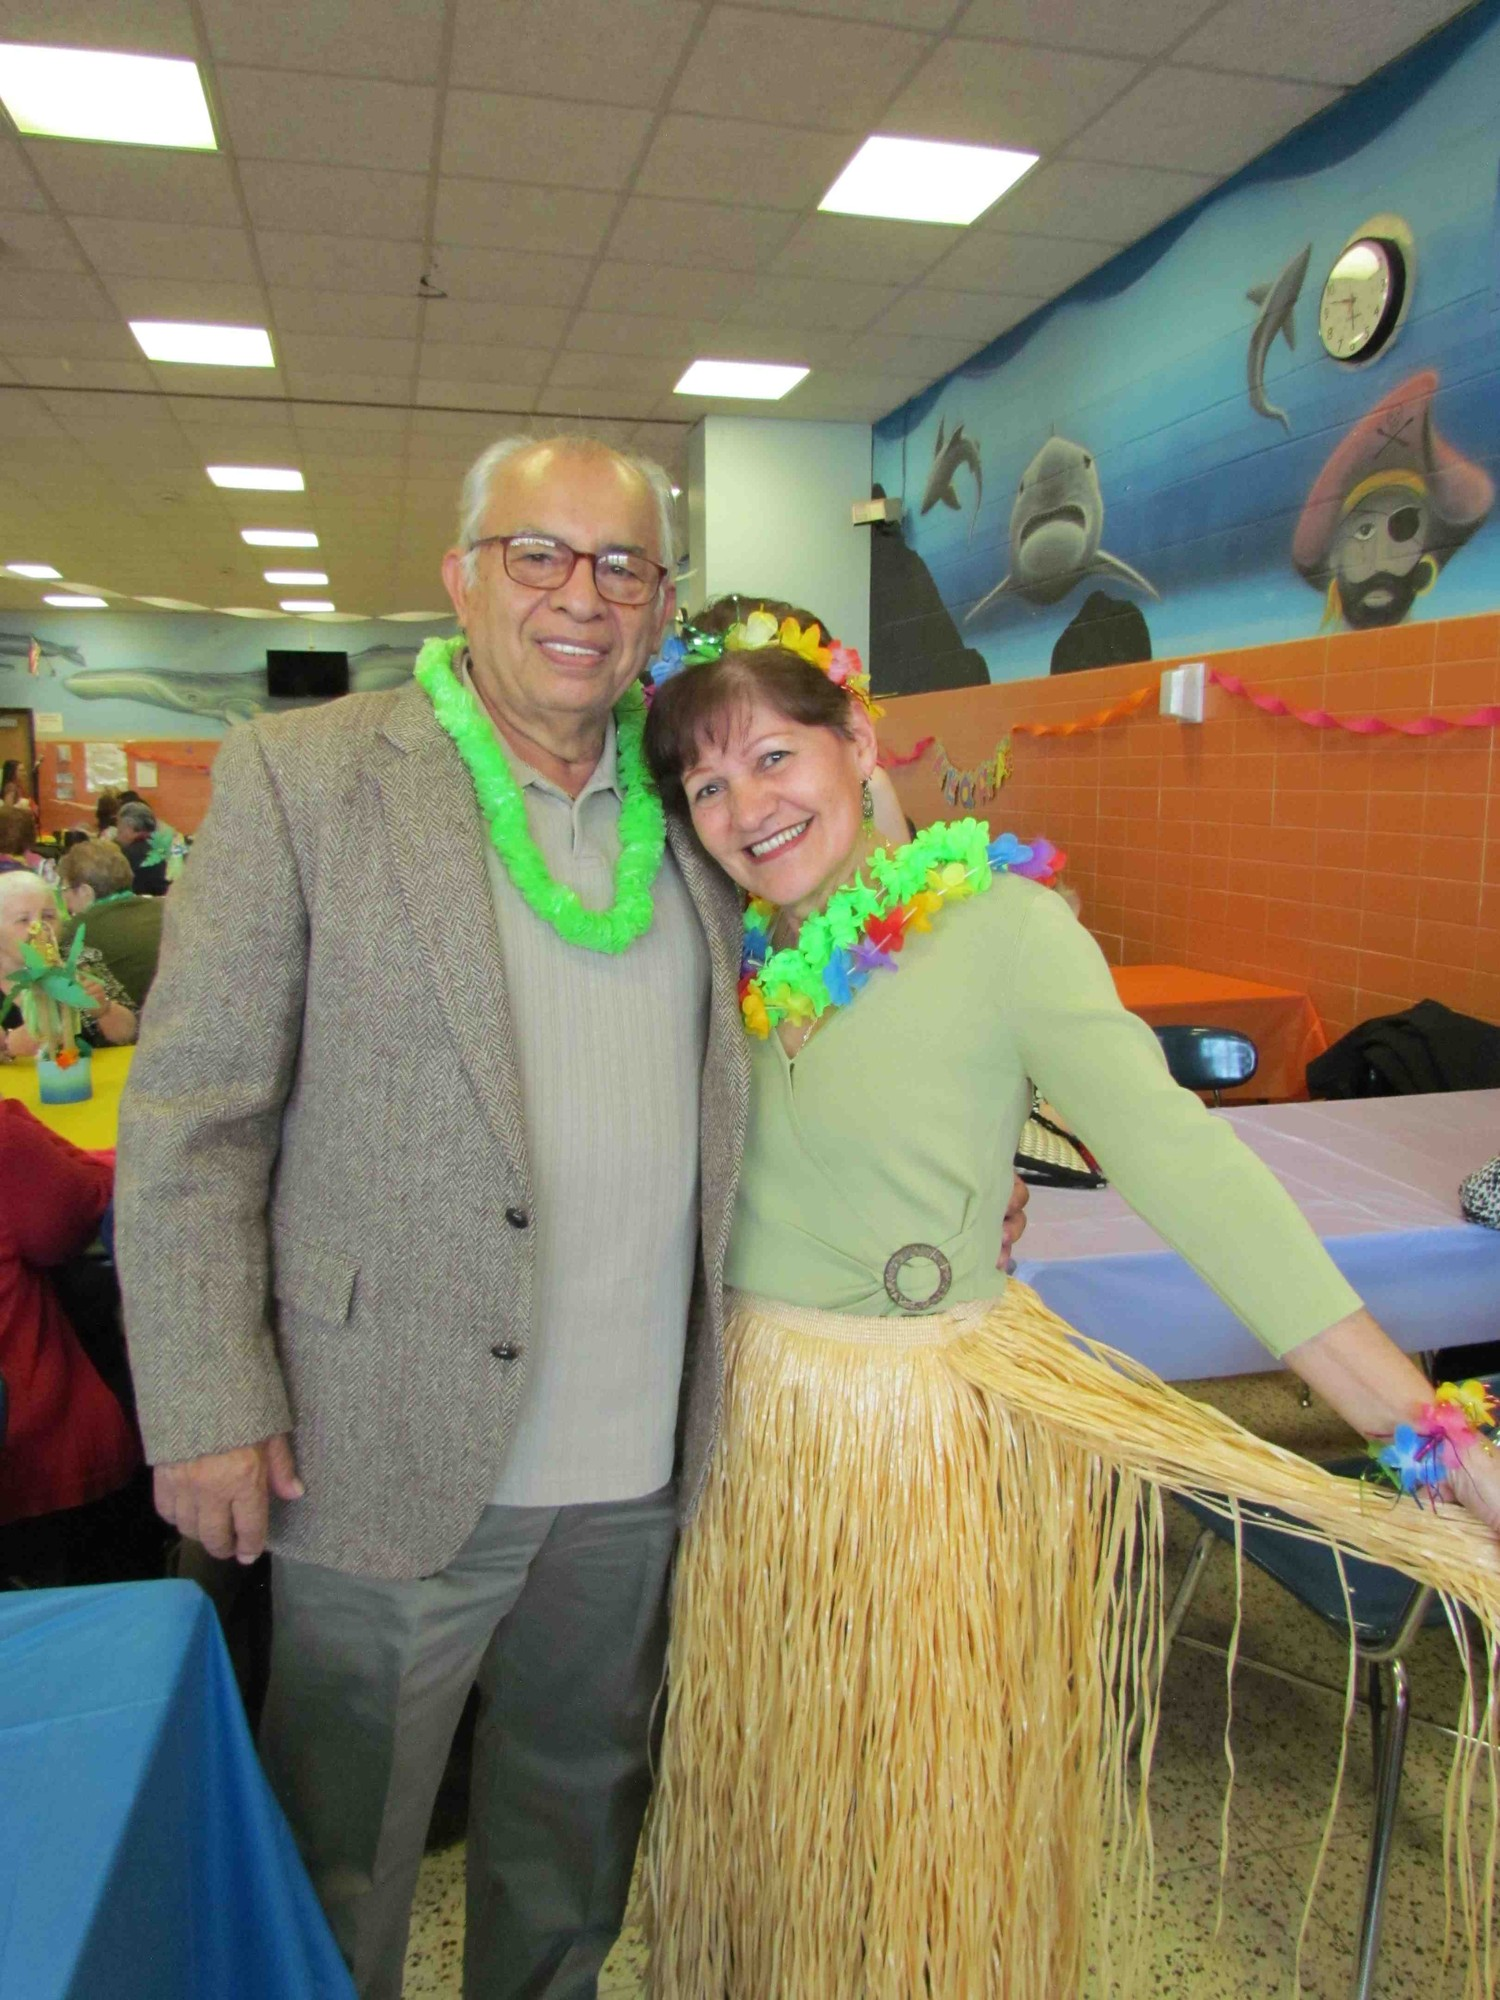 Mike and Rae Guzman of Bellmore dressed according to the Hawaiian theme at the annual senior citizens prom at Mepham High School on April 2.